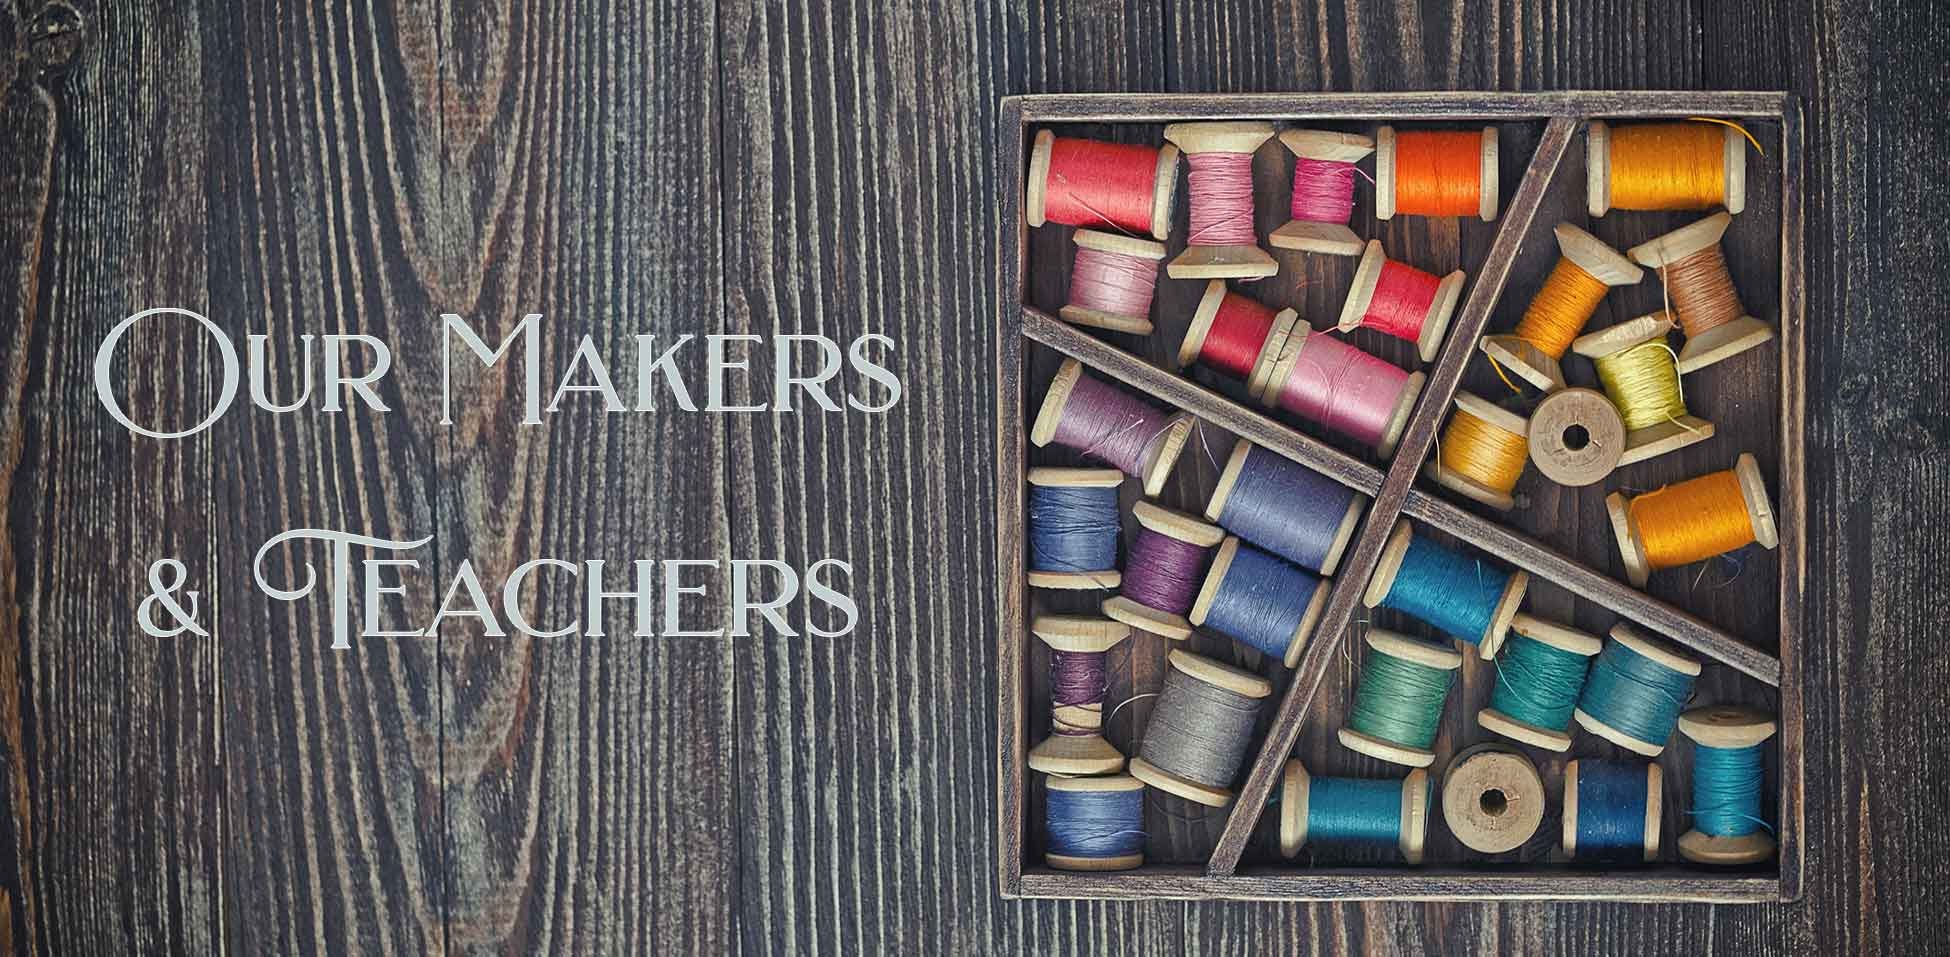 Page title 'Our Makers and Teachers' on wooden background with multiple spools of colored thread.